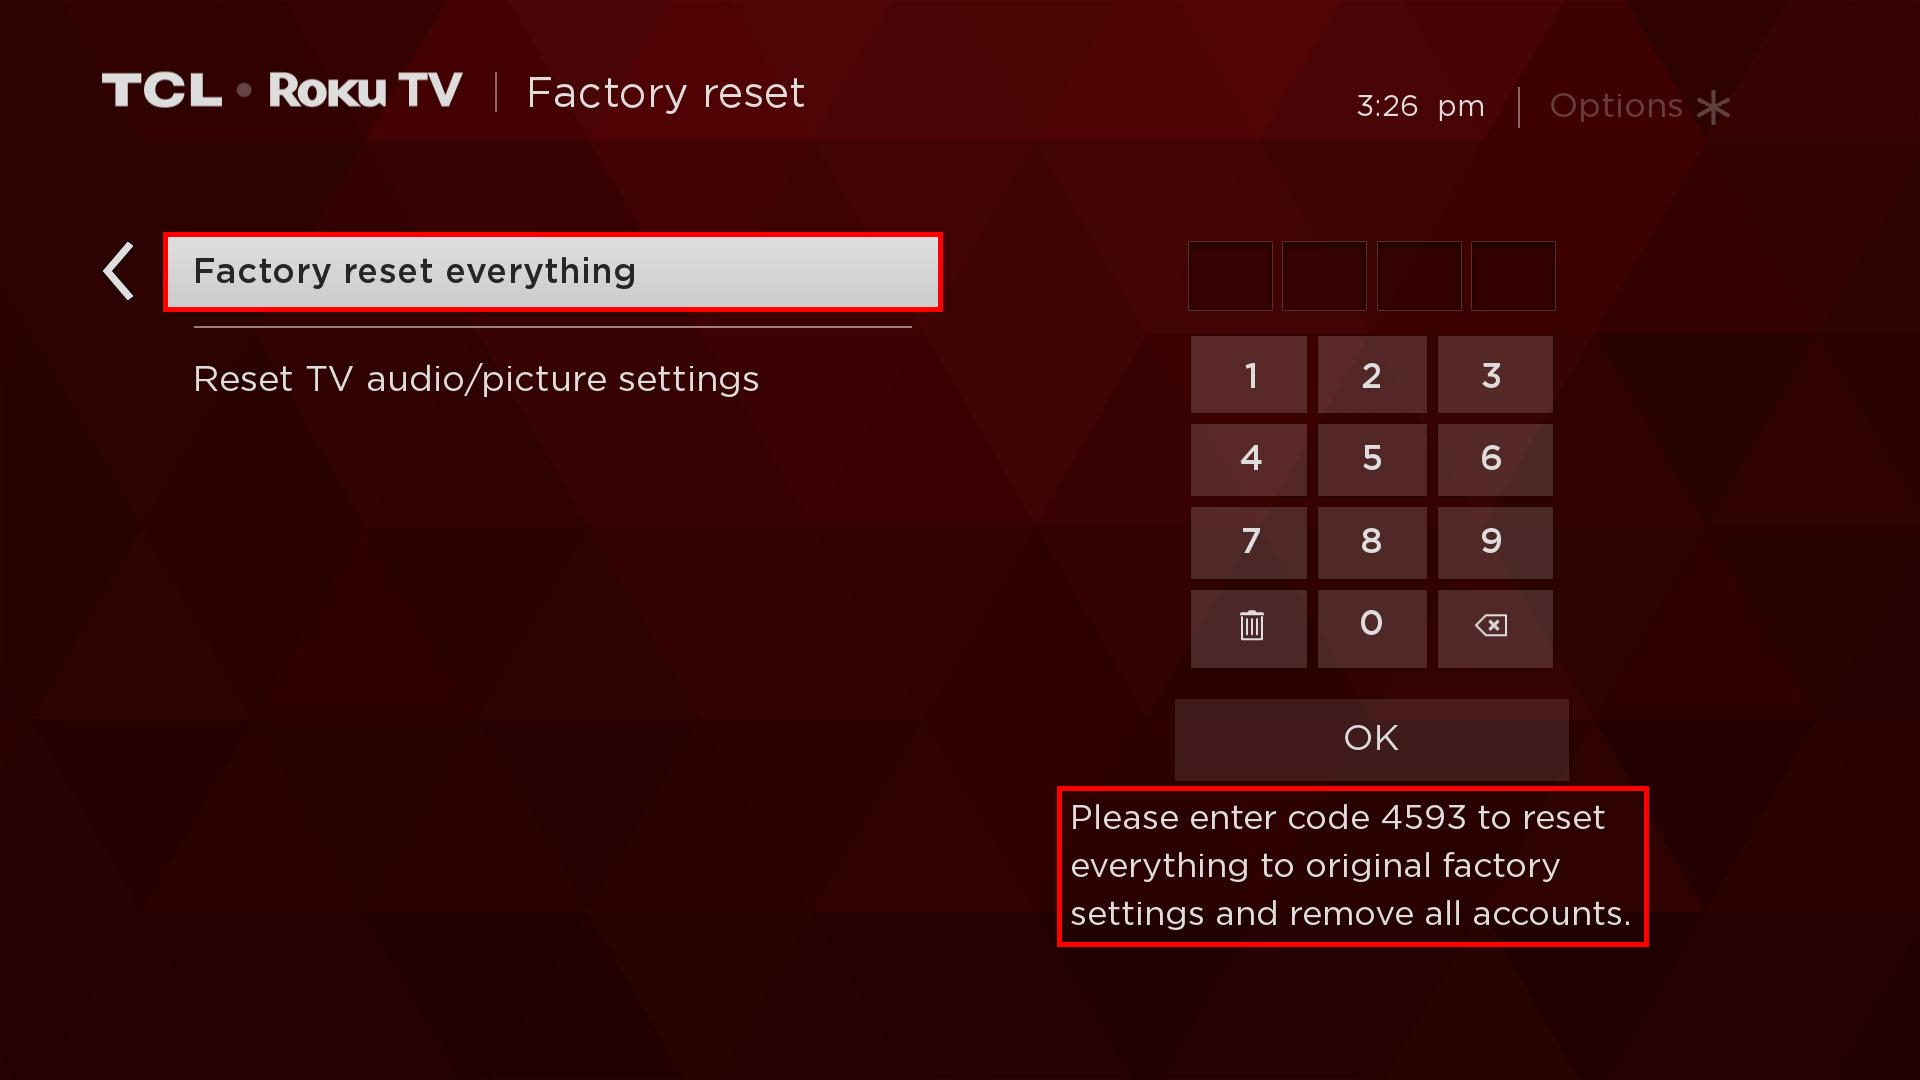 TCLUSA — How to Perform a Factory Reset on your TCL Roku TV